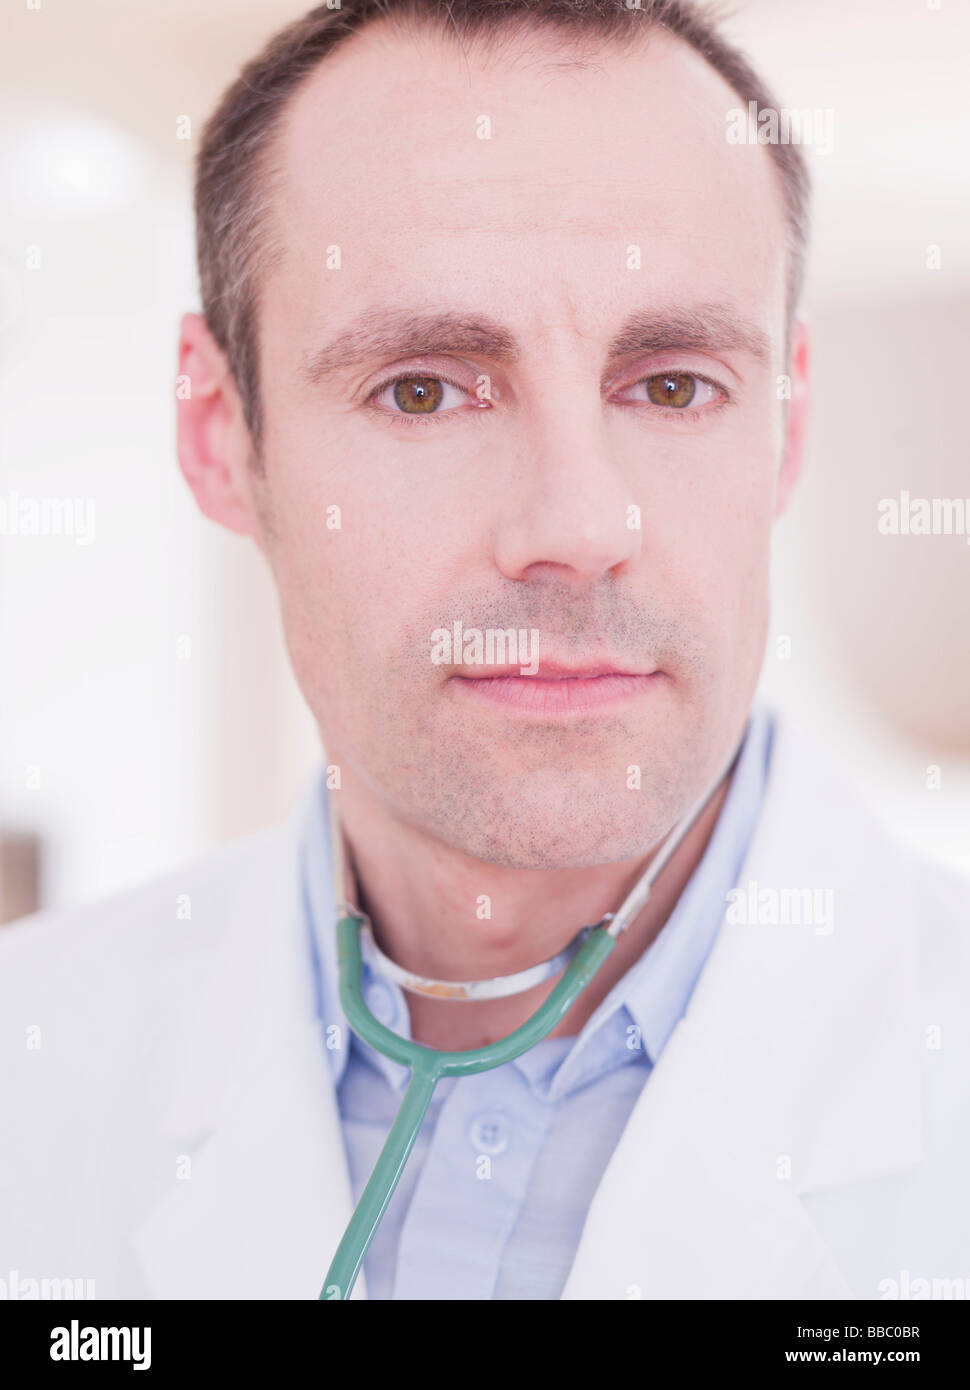 medic looking at viewer - Stock Image